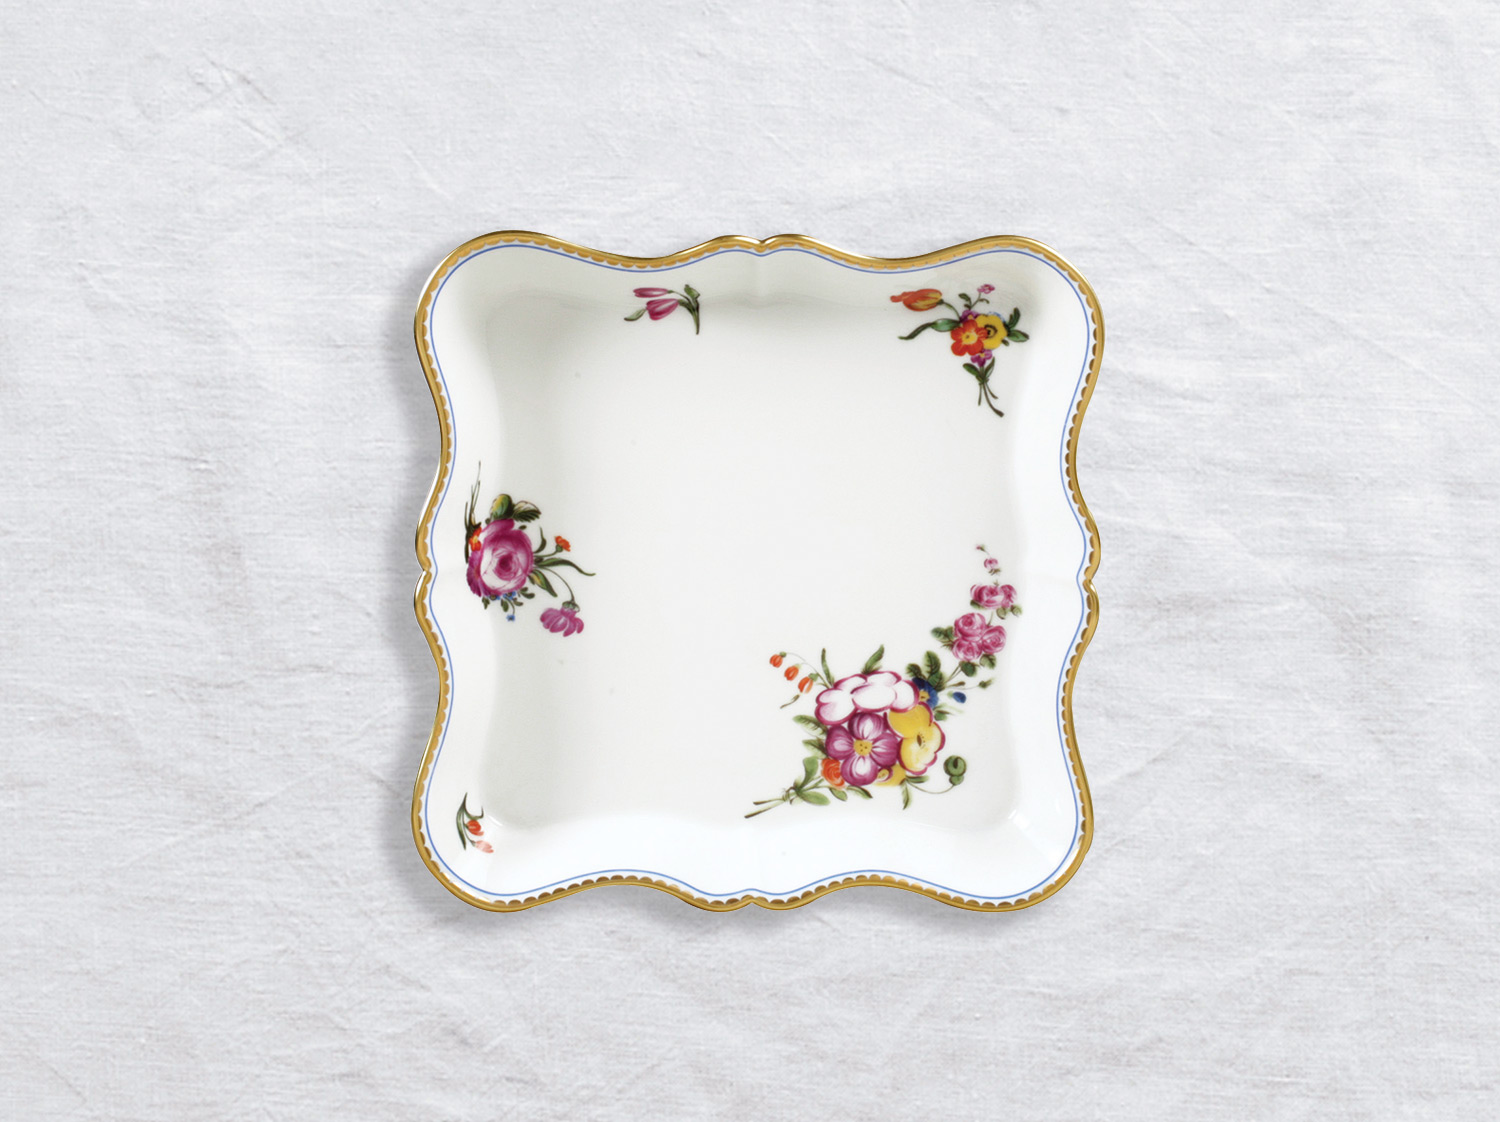 Plateau losange GM 20 x 20 cm en porcelaine de la collection A la reine Bernardaud